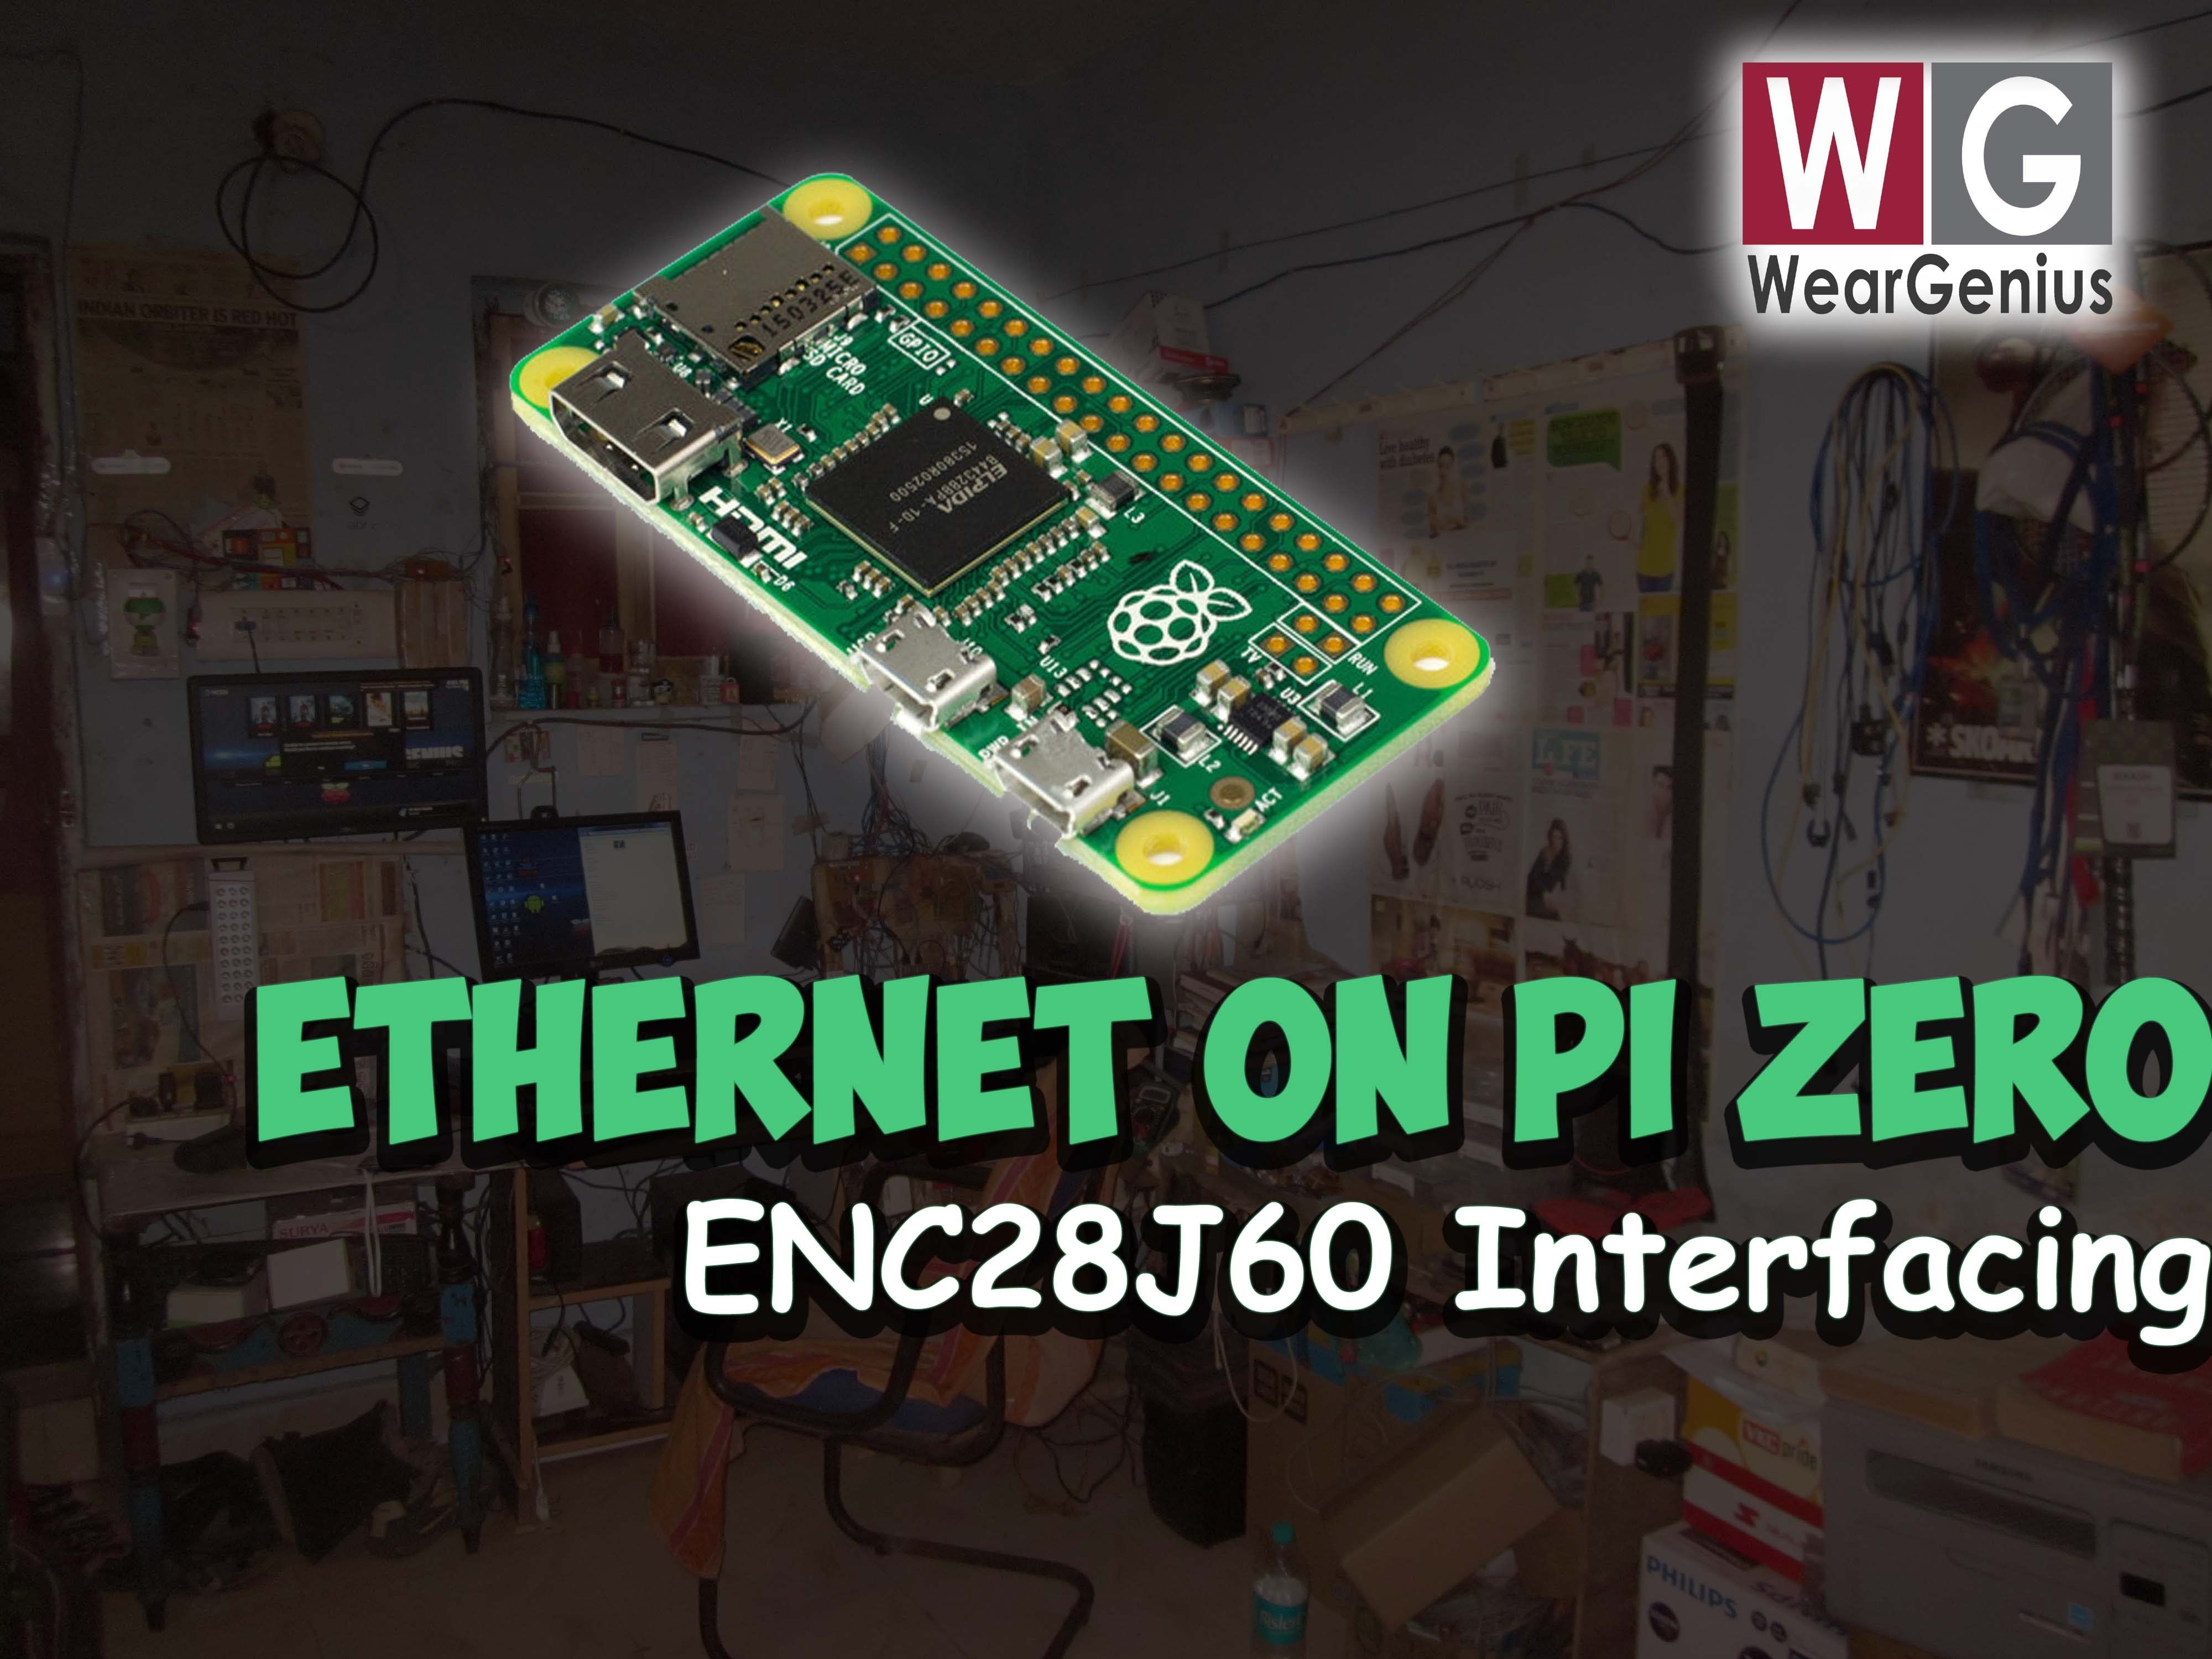 Raspberry pi zero ethernet connectivity weargenius youtube as raspberry pi zero doesnot have onboard ethernet this tutorial is all about connecting to rspberry pi zero to have ethernet connectivity baditri Images